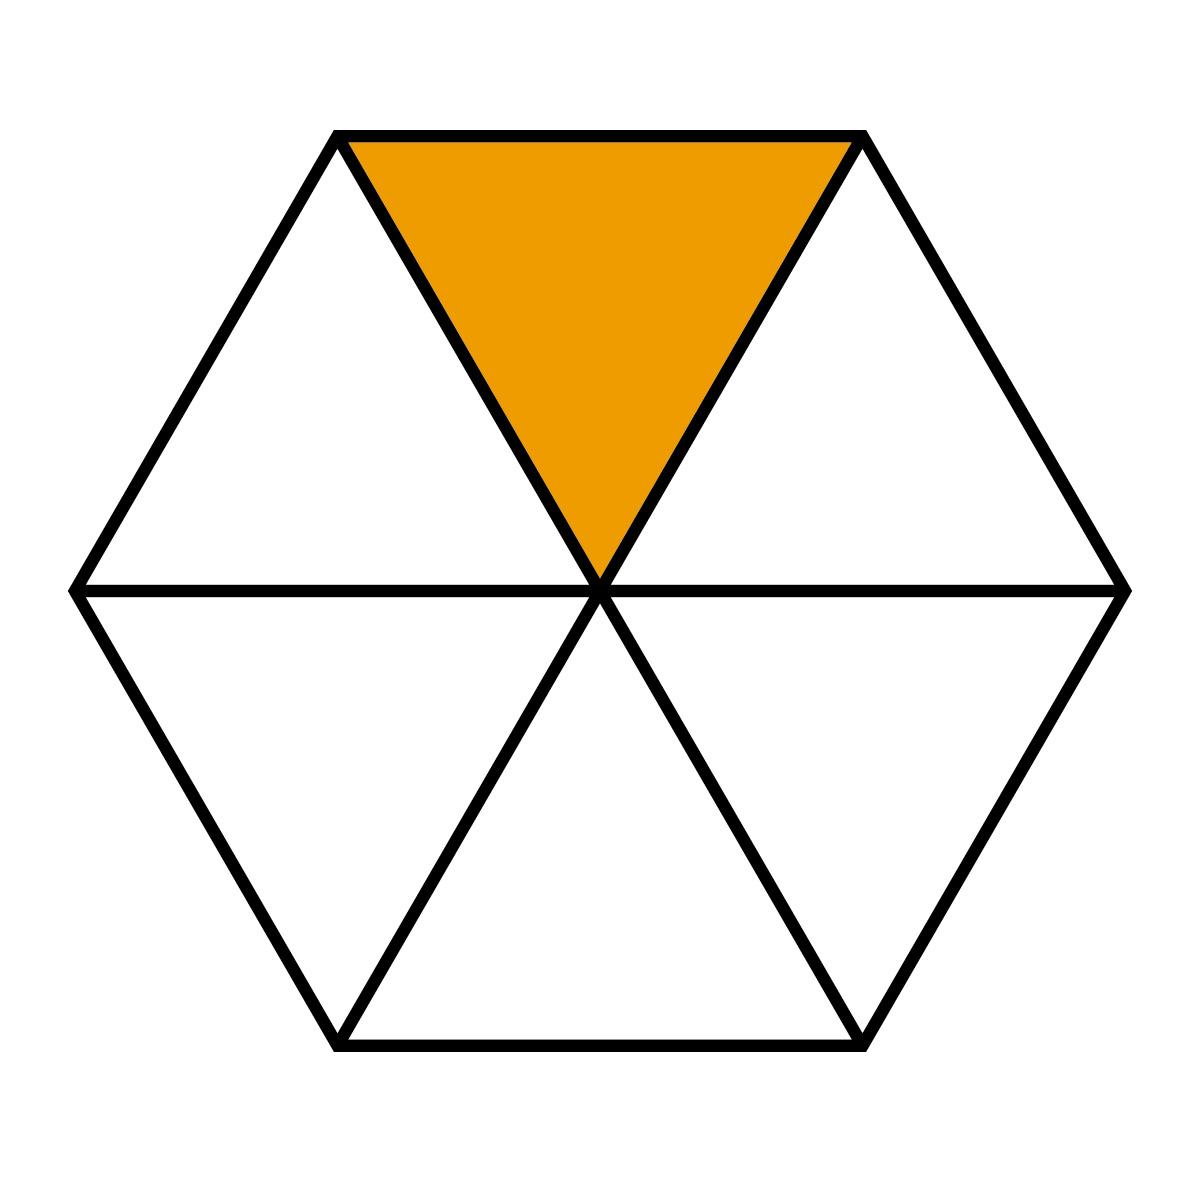 Polygon clipart #7, Download drawings